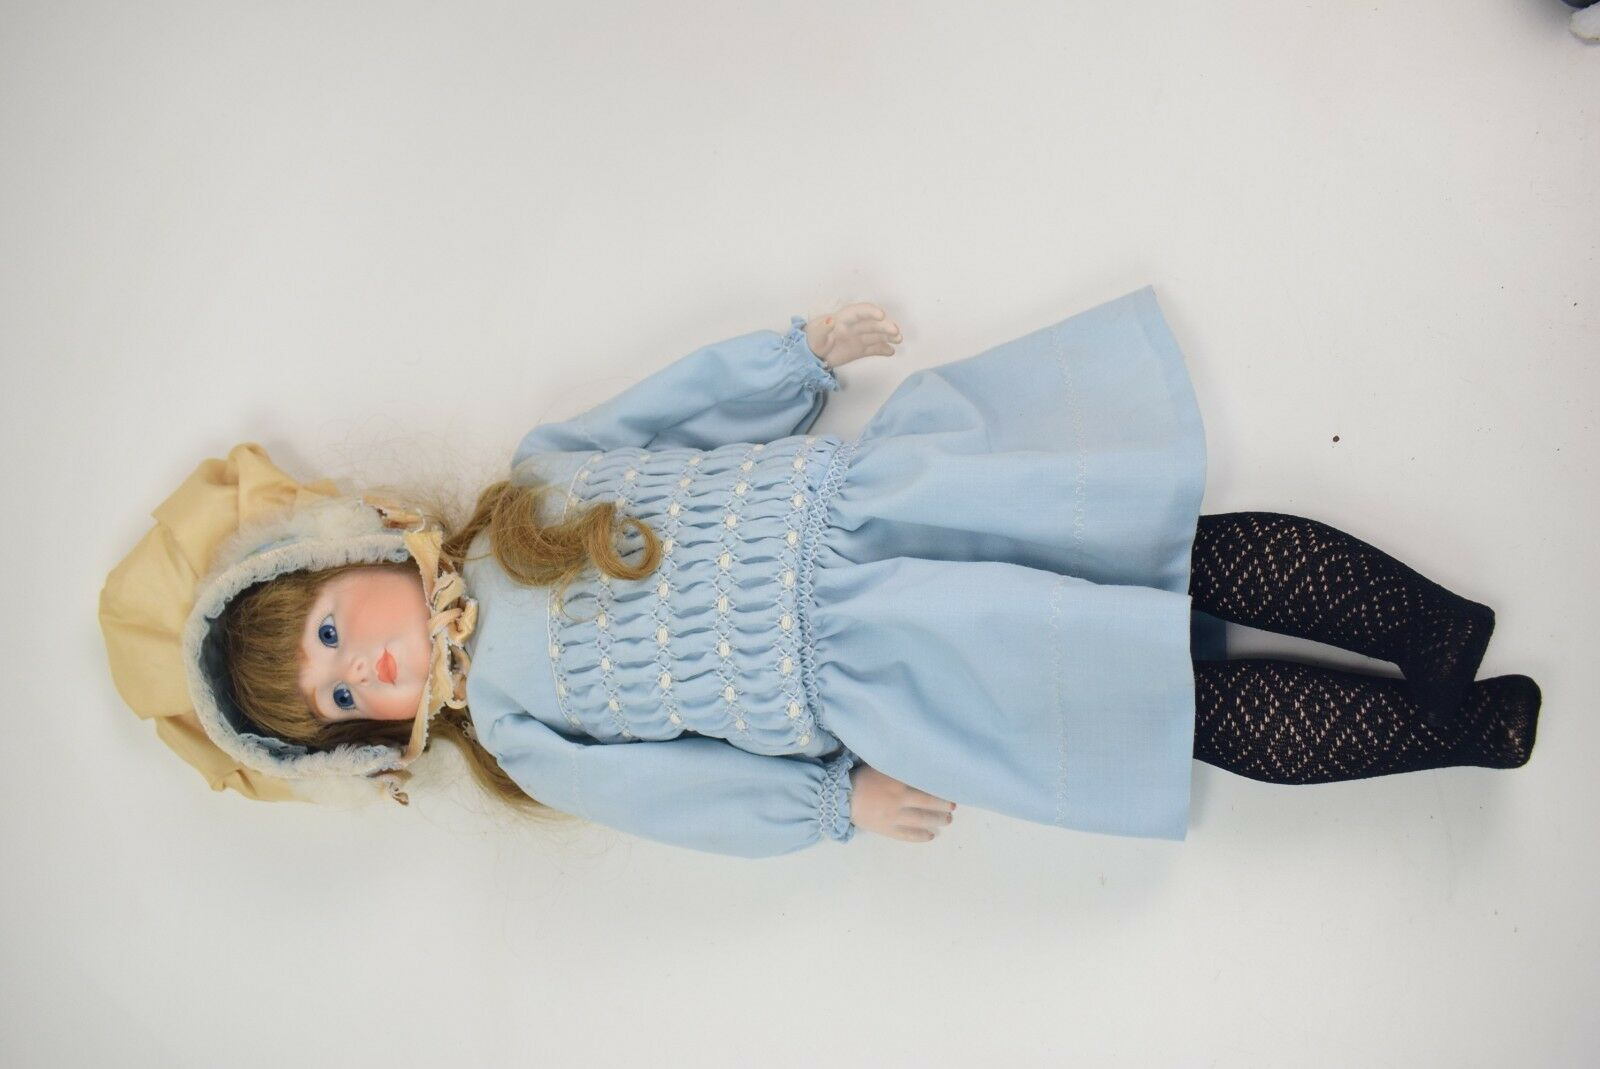 K star R doll reproduction by Connie DeShore - porcelain / bisque doll 24